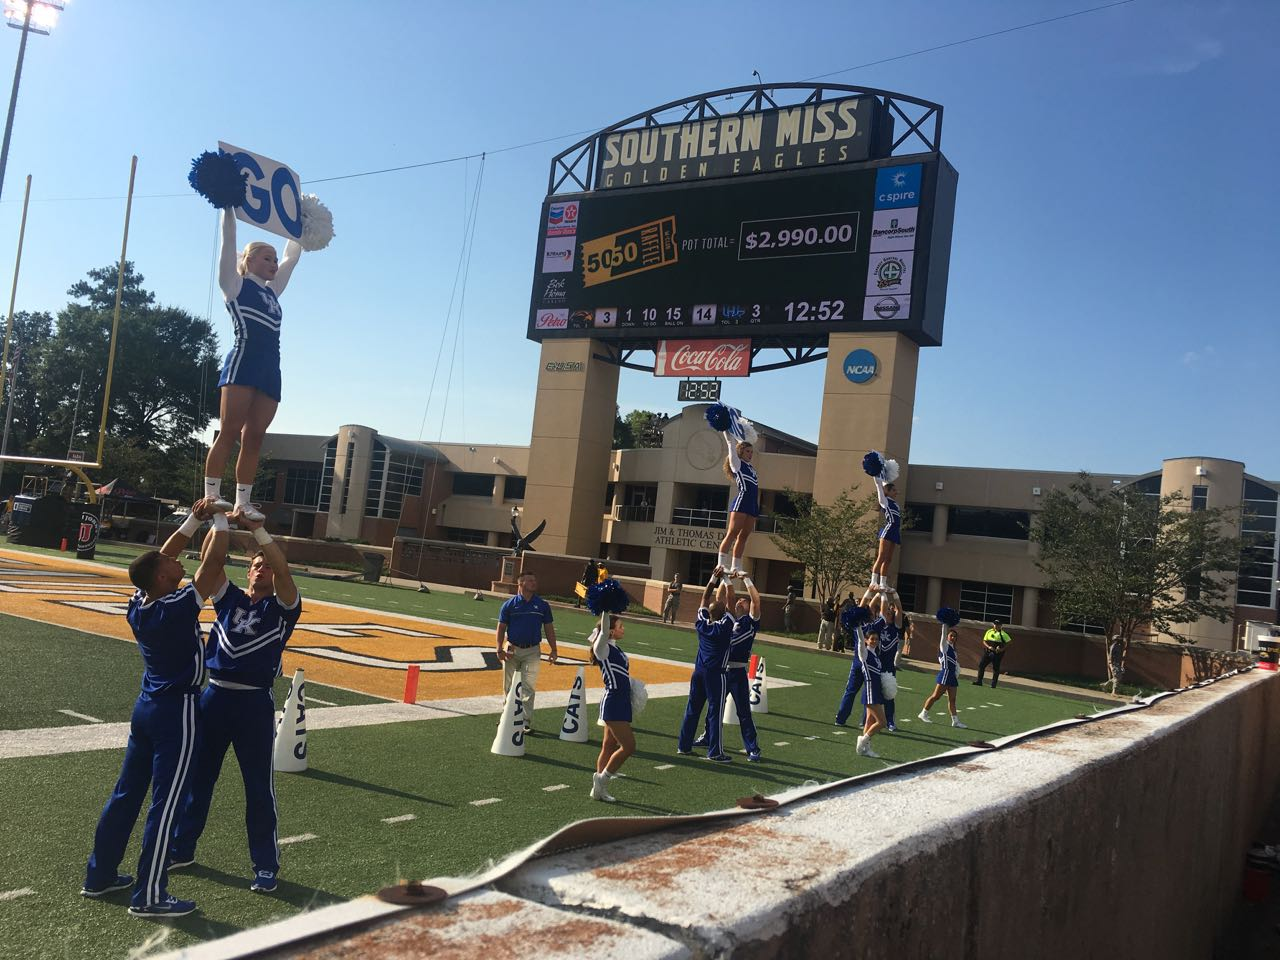 Kentucky at Southern Miss